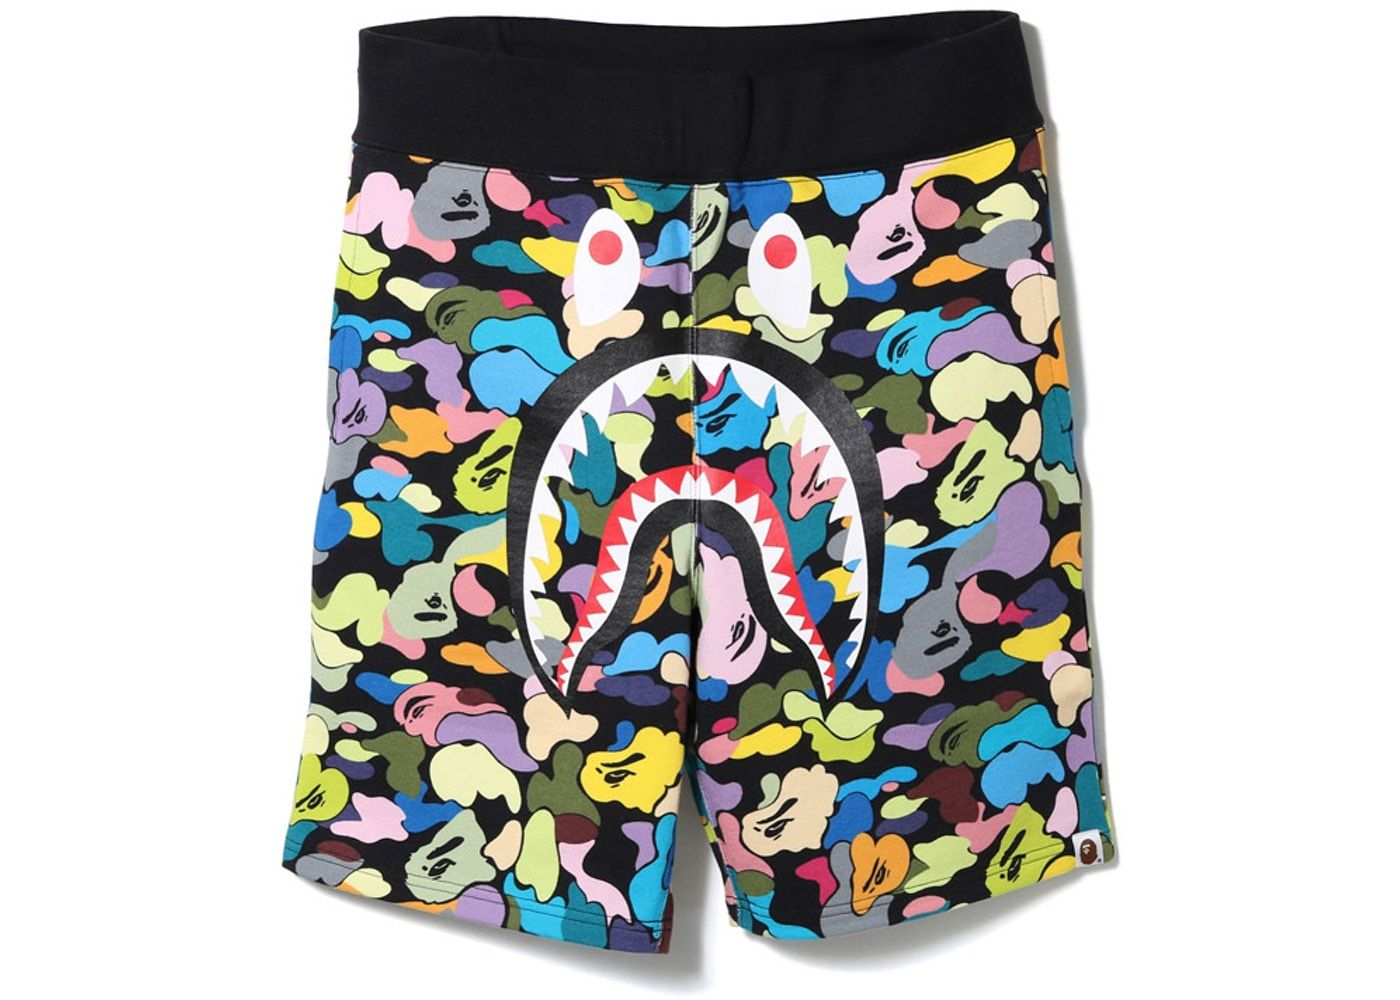 a47a79730c BAPE Multi Camo Shark Sweat Shorts Black | HypeBeast Streetwear ...